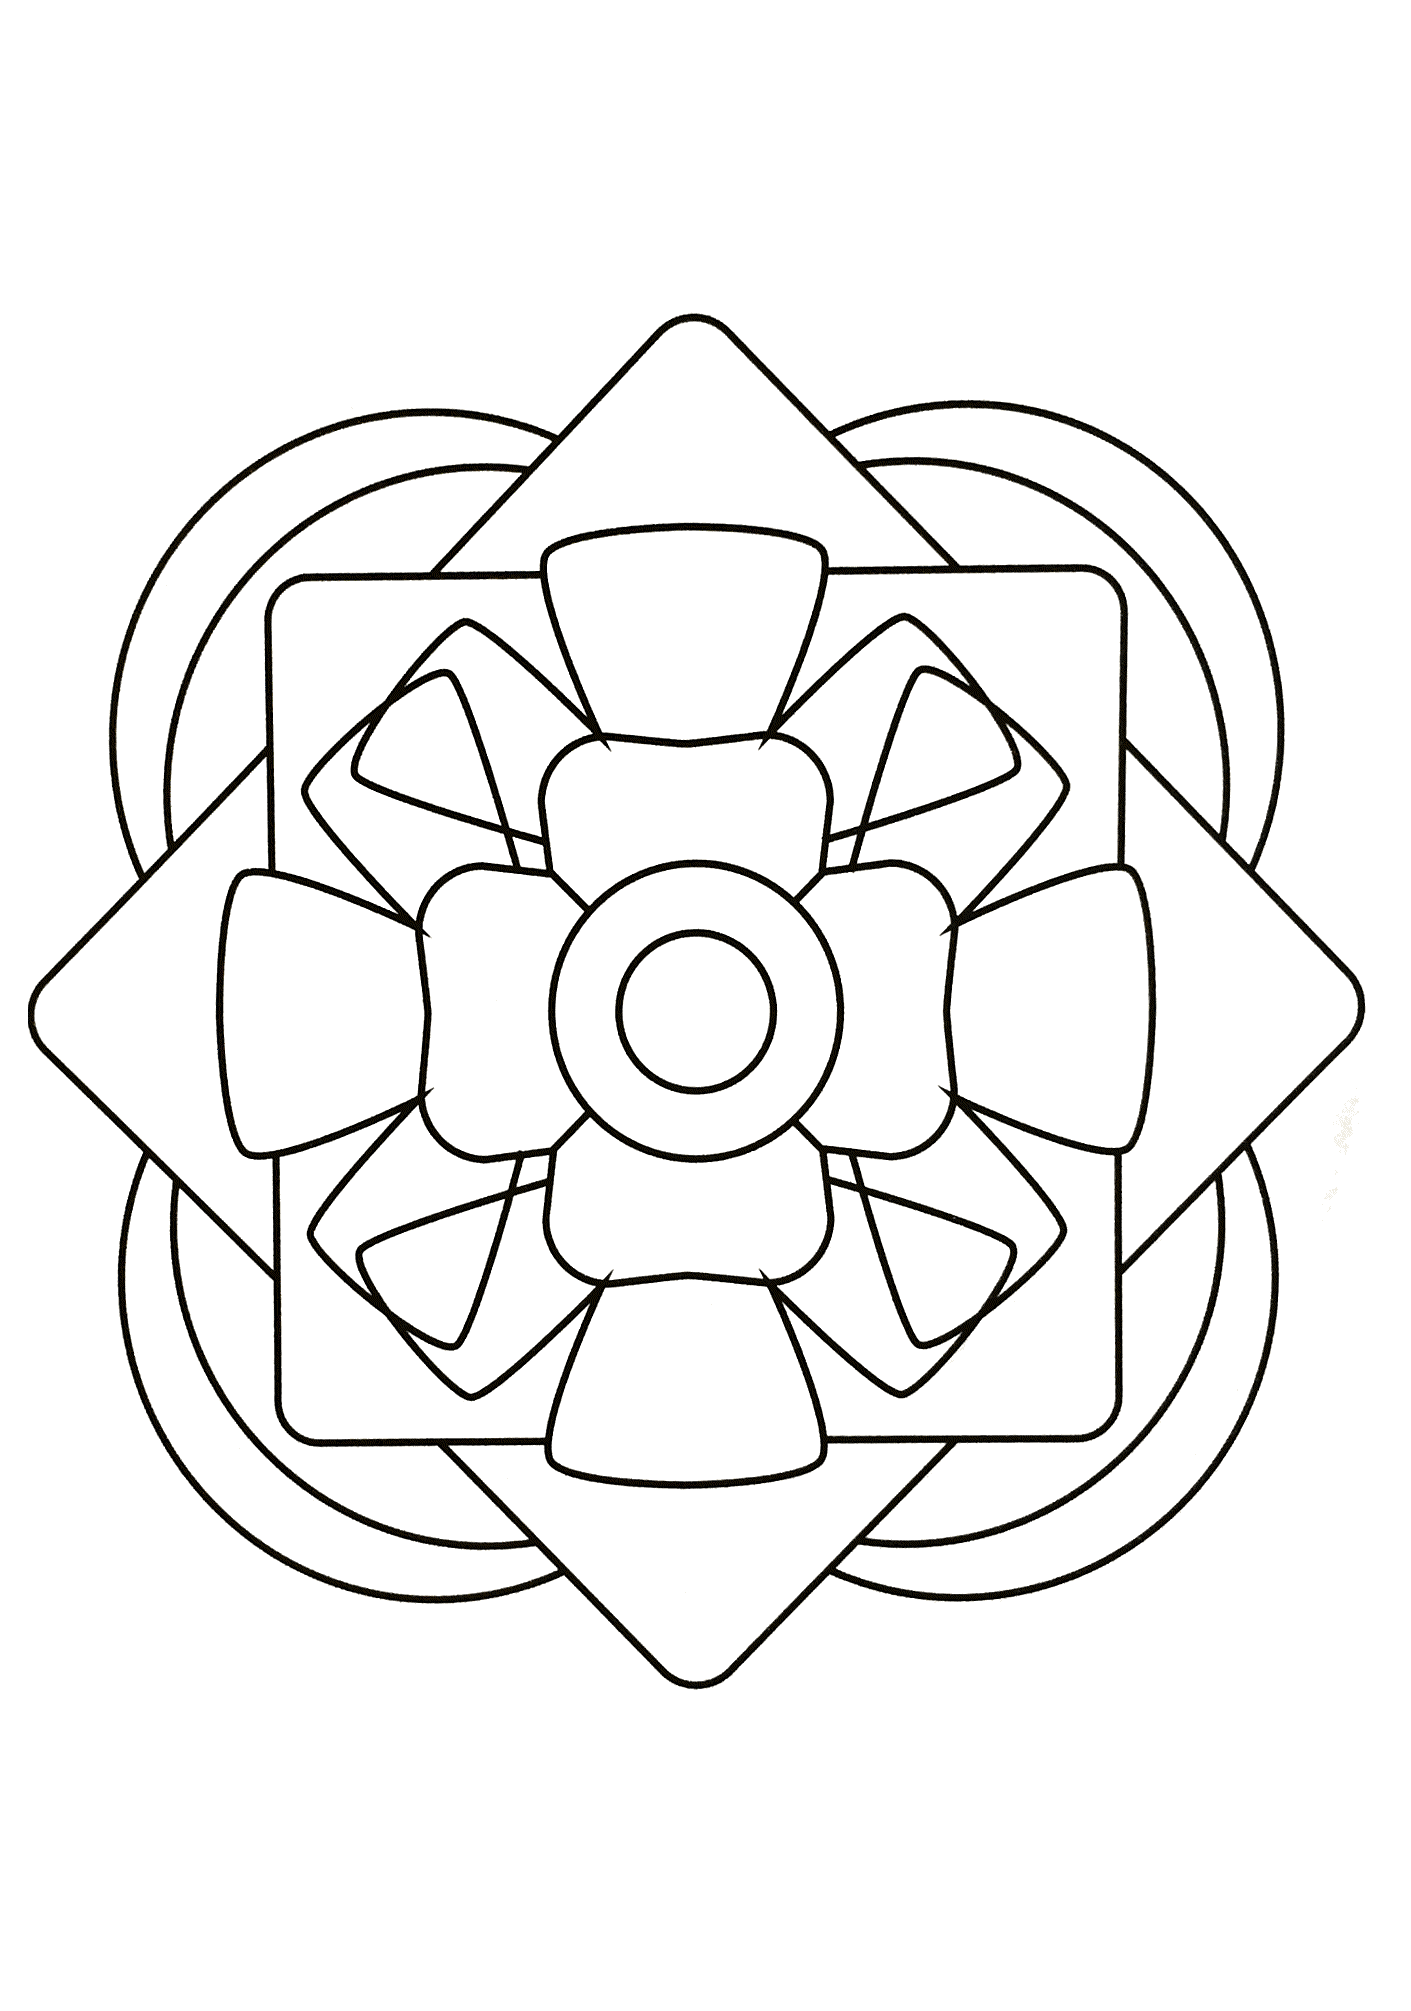 Simple Mandala 66 M Amp Alas Coloring Pages For Kids To